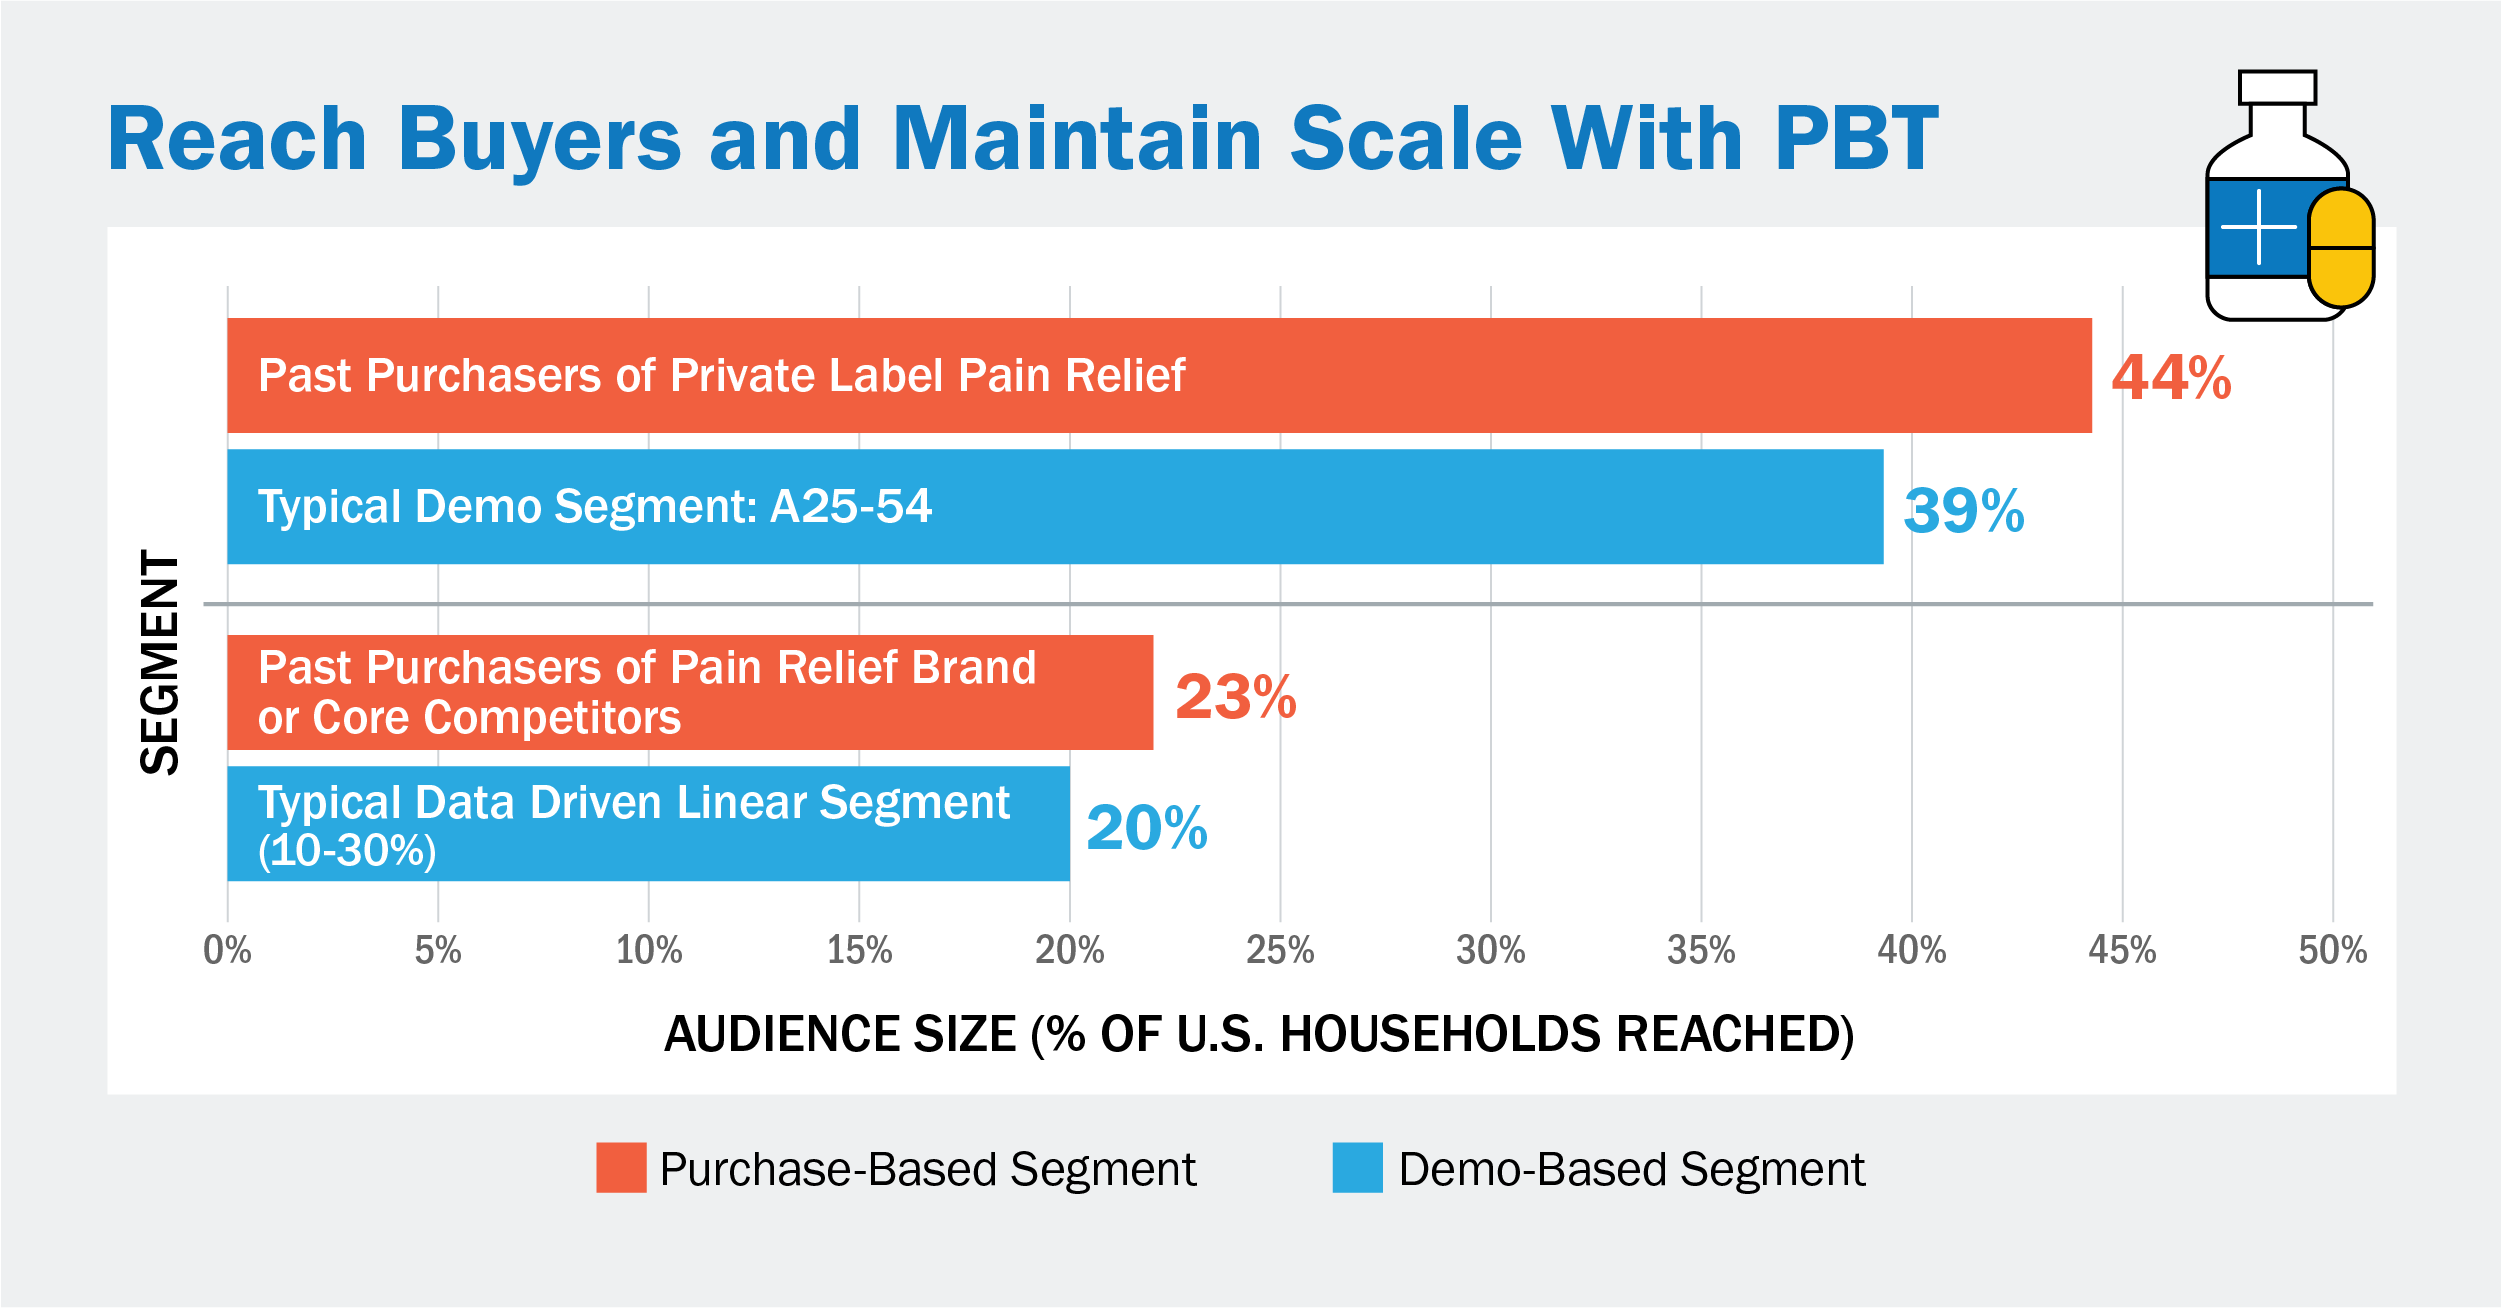 NCS Reach Buyers and Maintain Scale With PBT